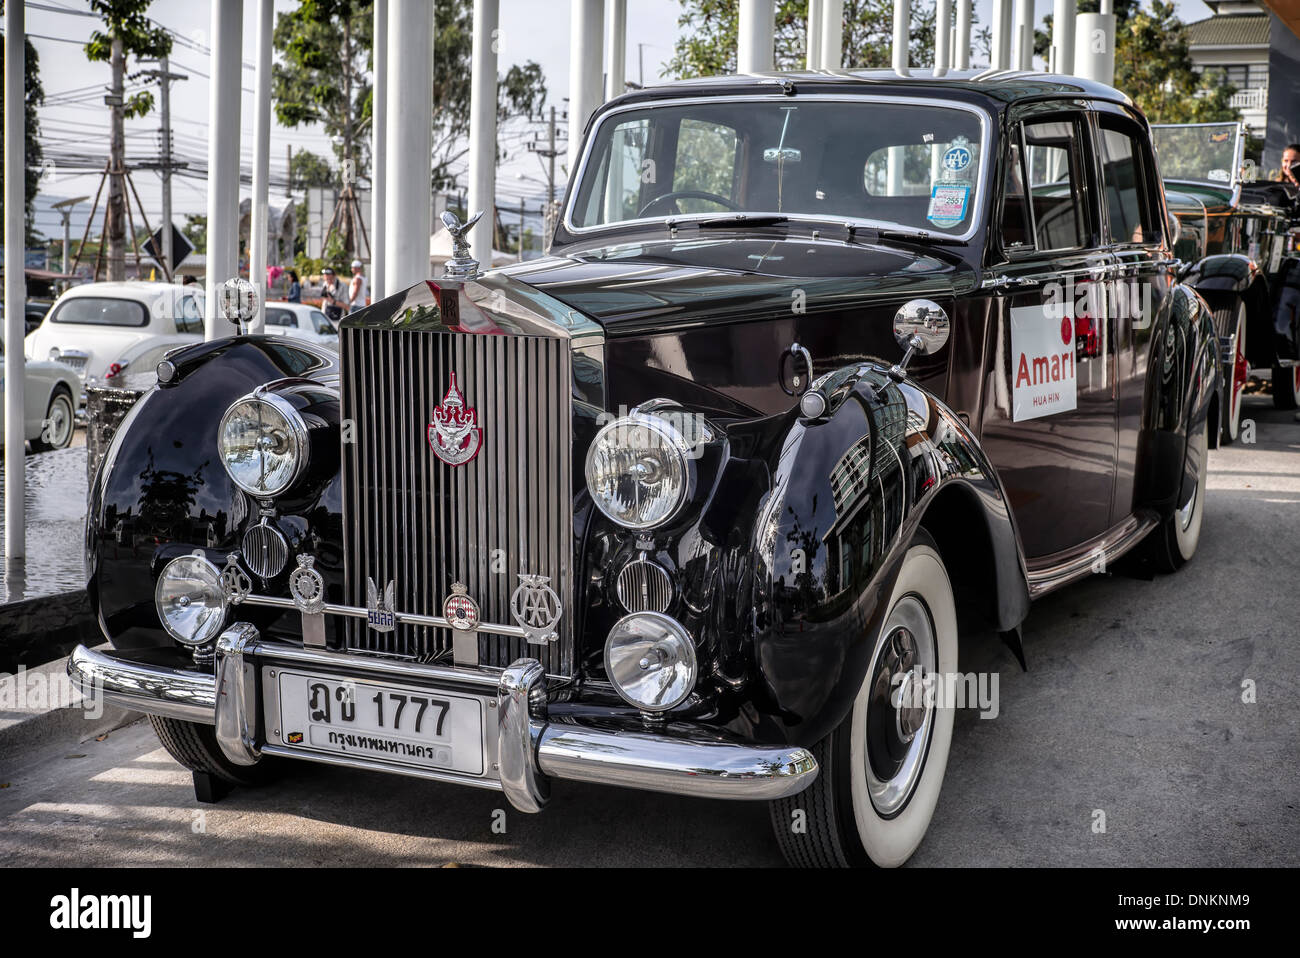 Rolls royce silver dawn limousine 1951 classic british executive motorcar used by thailand s royalty